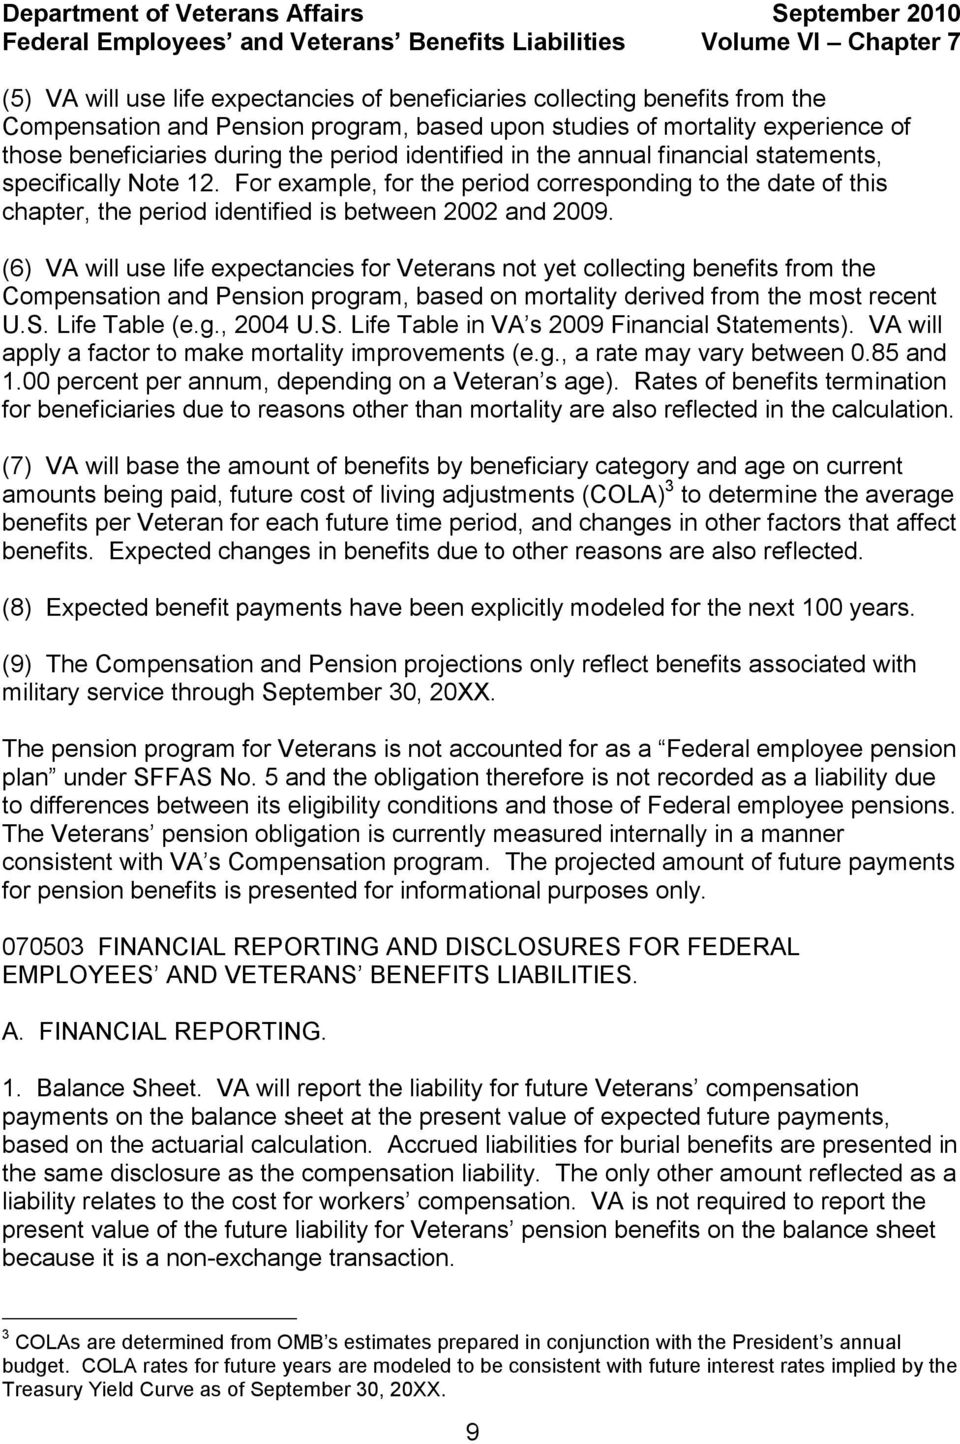 (6) VA will use life expectancies for Veterans not yet collecting benefits from the Compensation and Pension program, based on mortality derived from the most recent U.S.